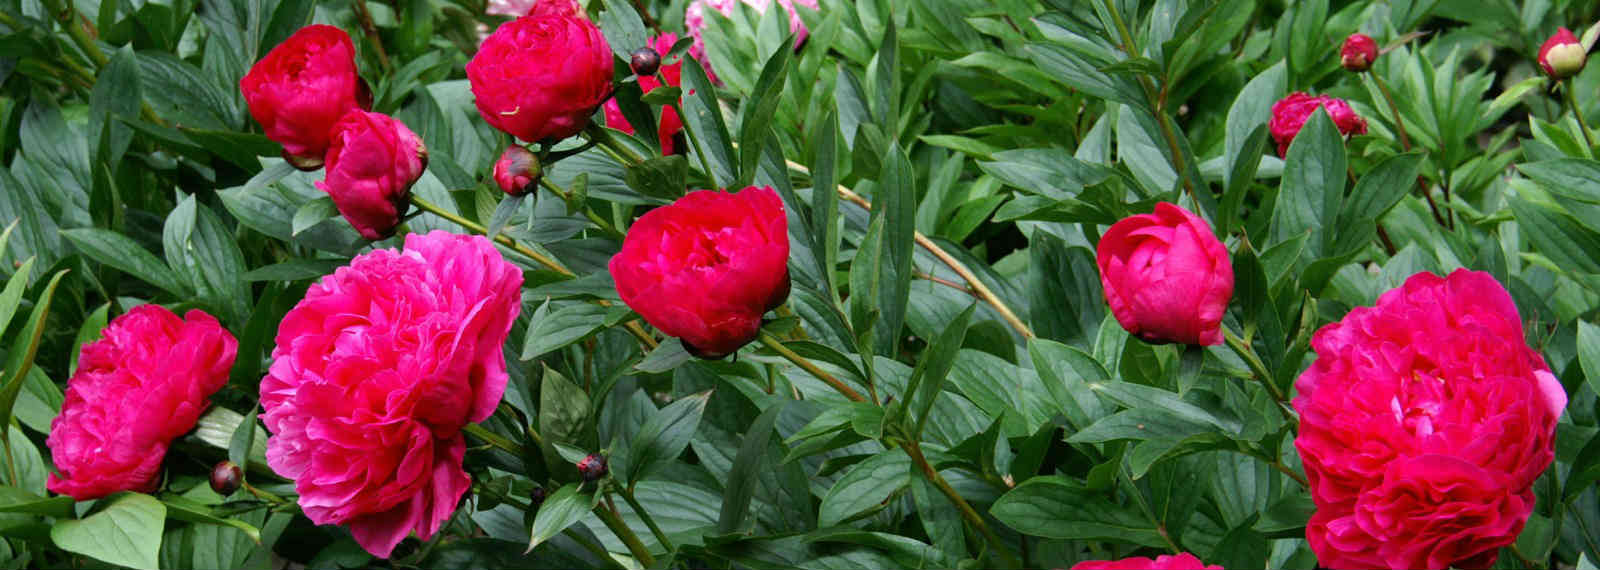 Mail order delivery of potted peonies